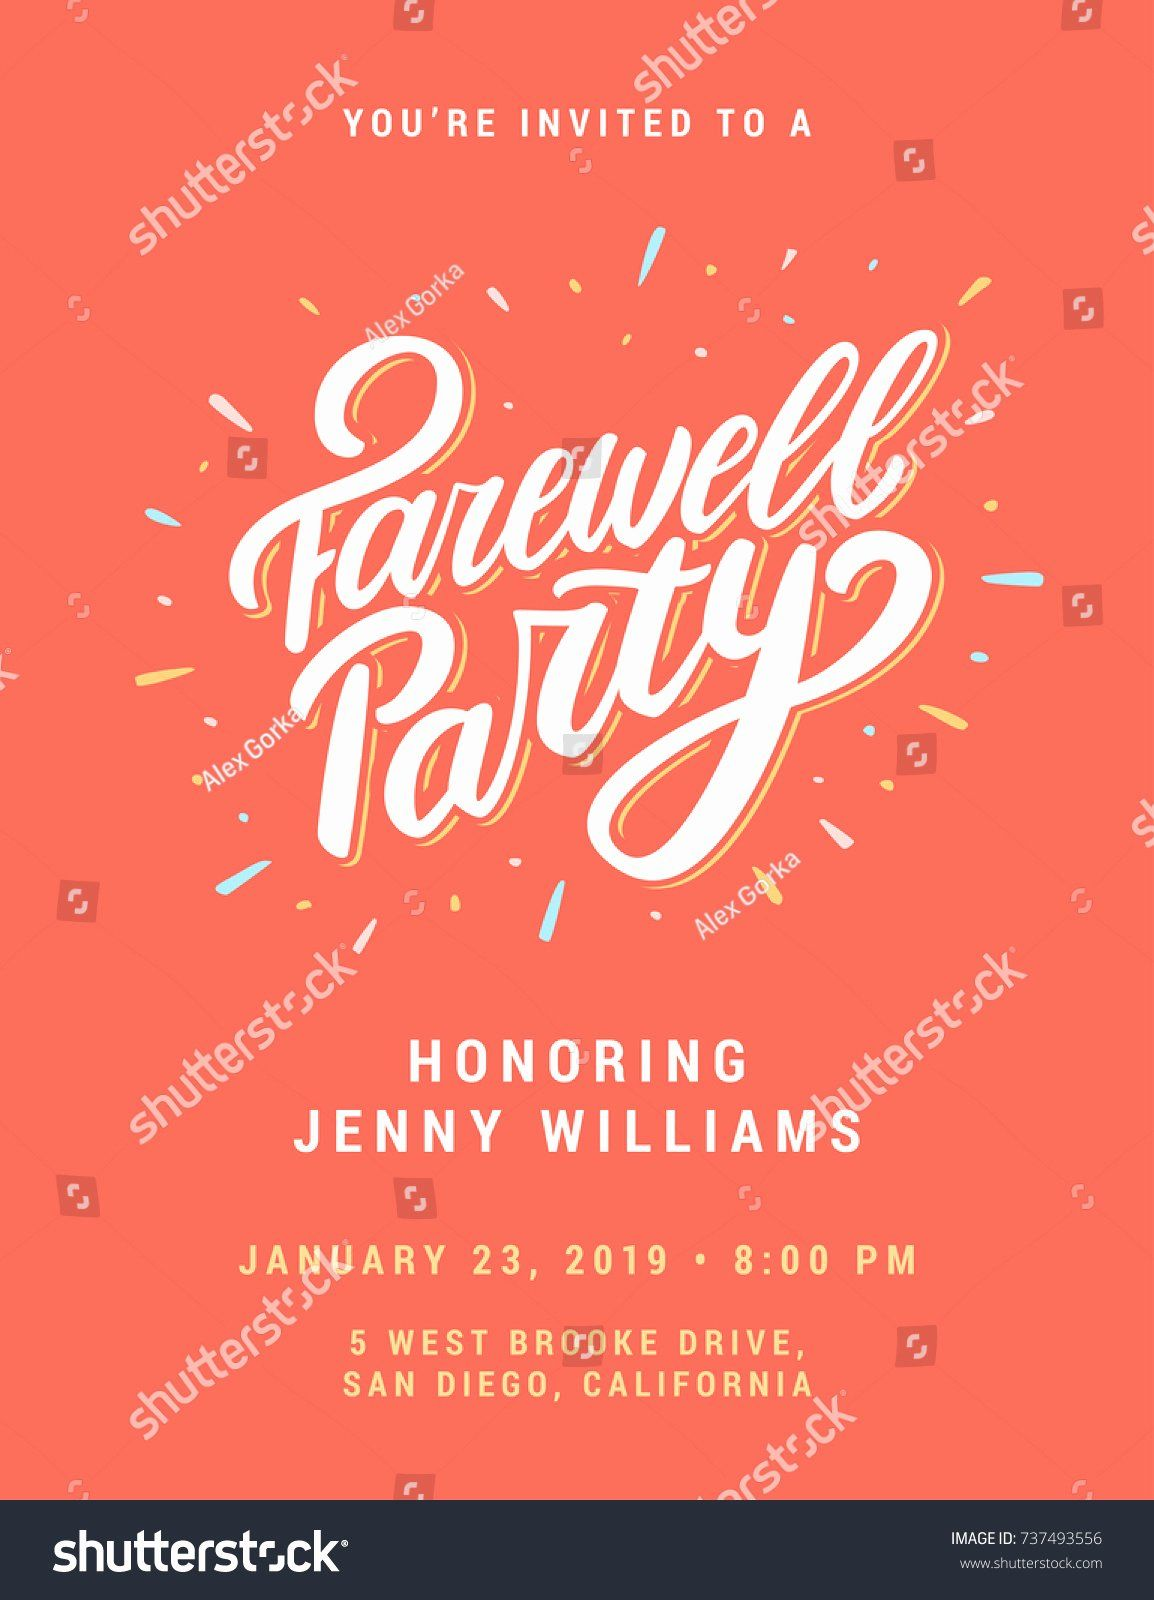 Farewell Invitation Template Free Beautiful Going Away Party Flyer Party Invite Template Farewell Invitation Card Farewell Party Invitations